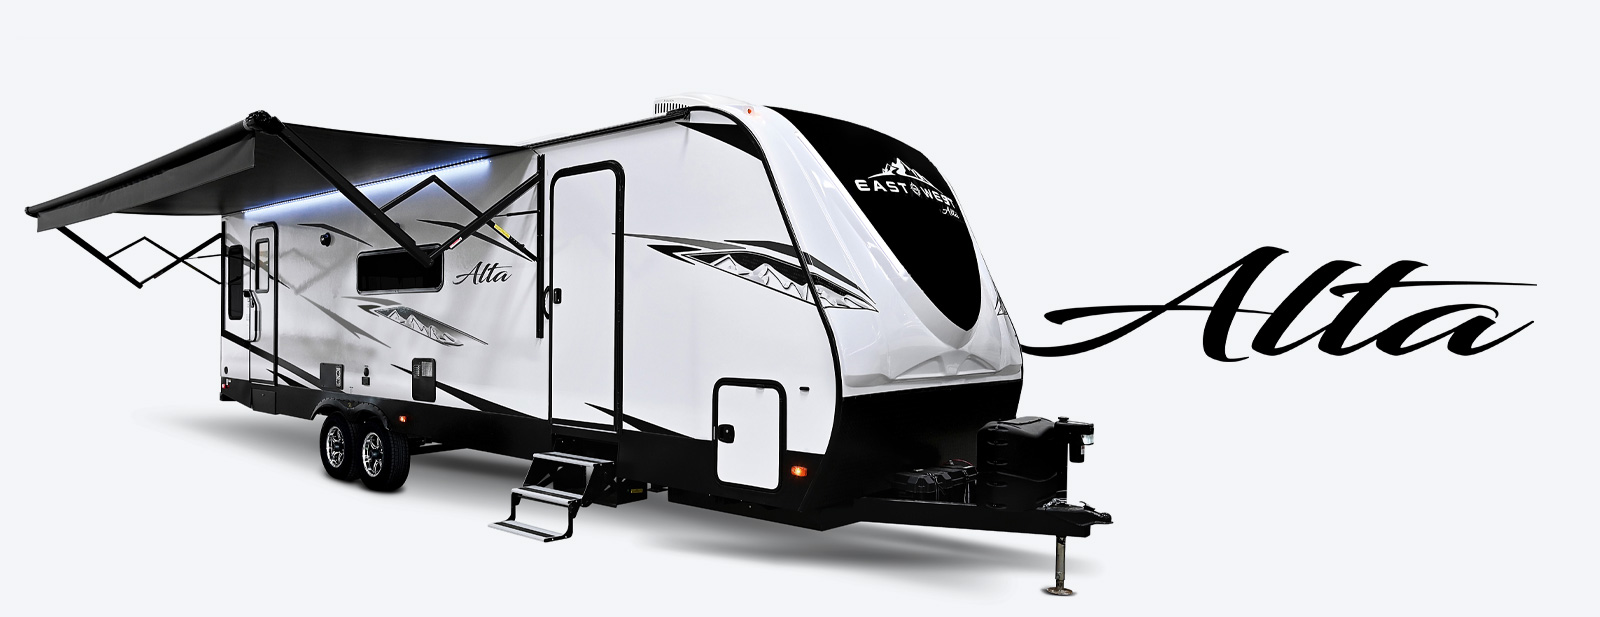 Alta   East To West - RV Manufacturer in Elkhart Indiana